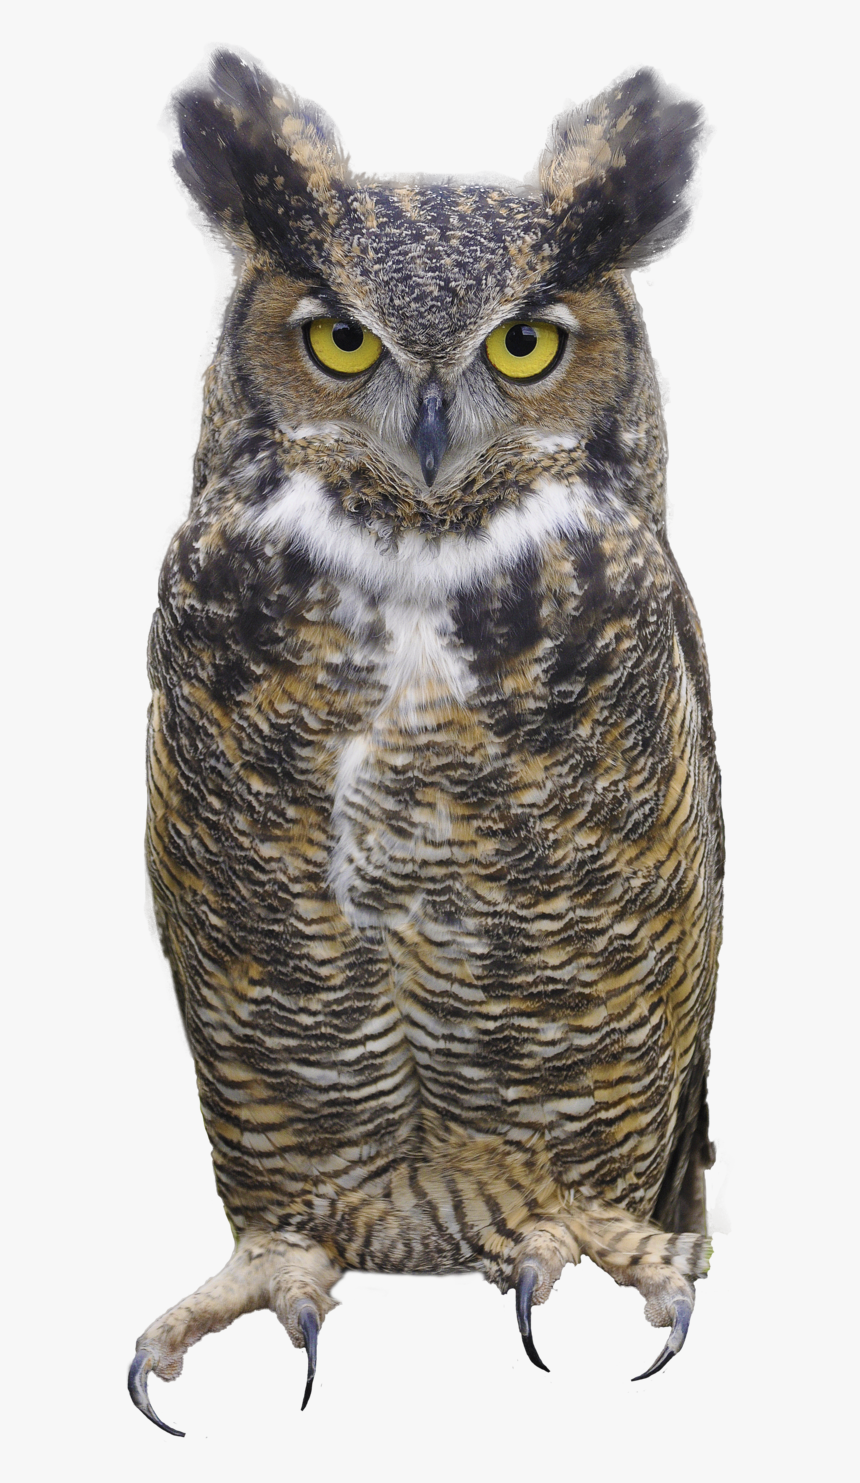 Owl Png - Great Horned Owl Png, Transparent Png, Free Download